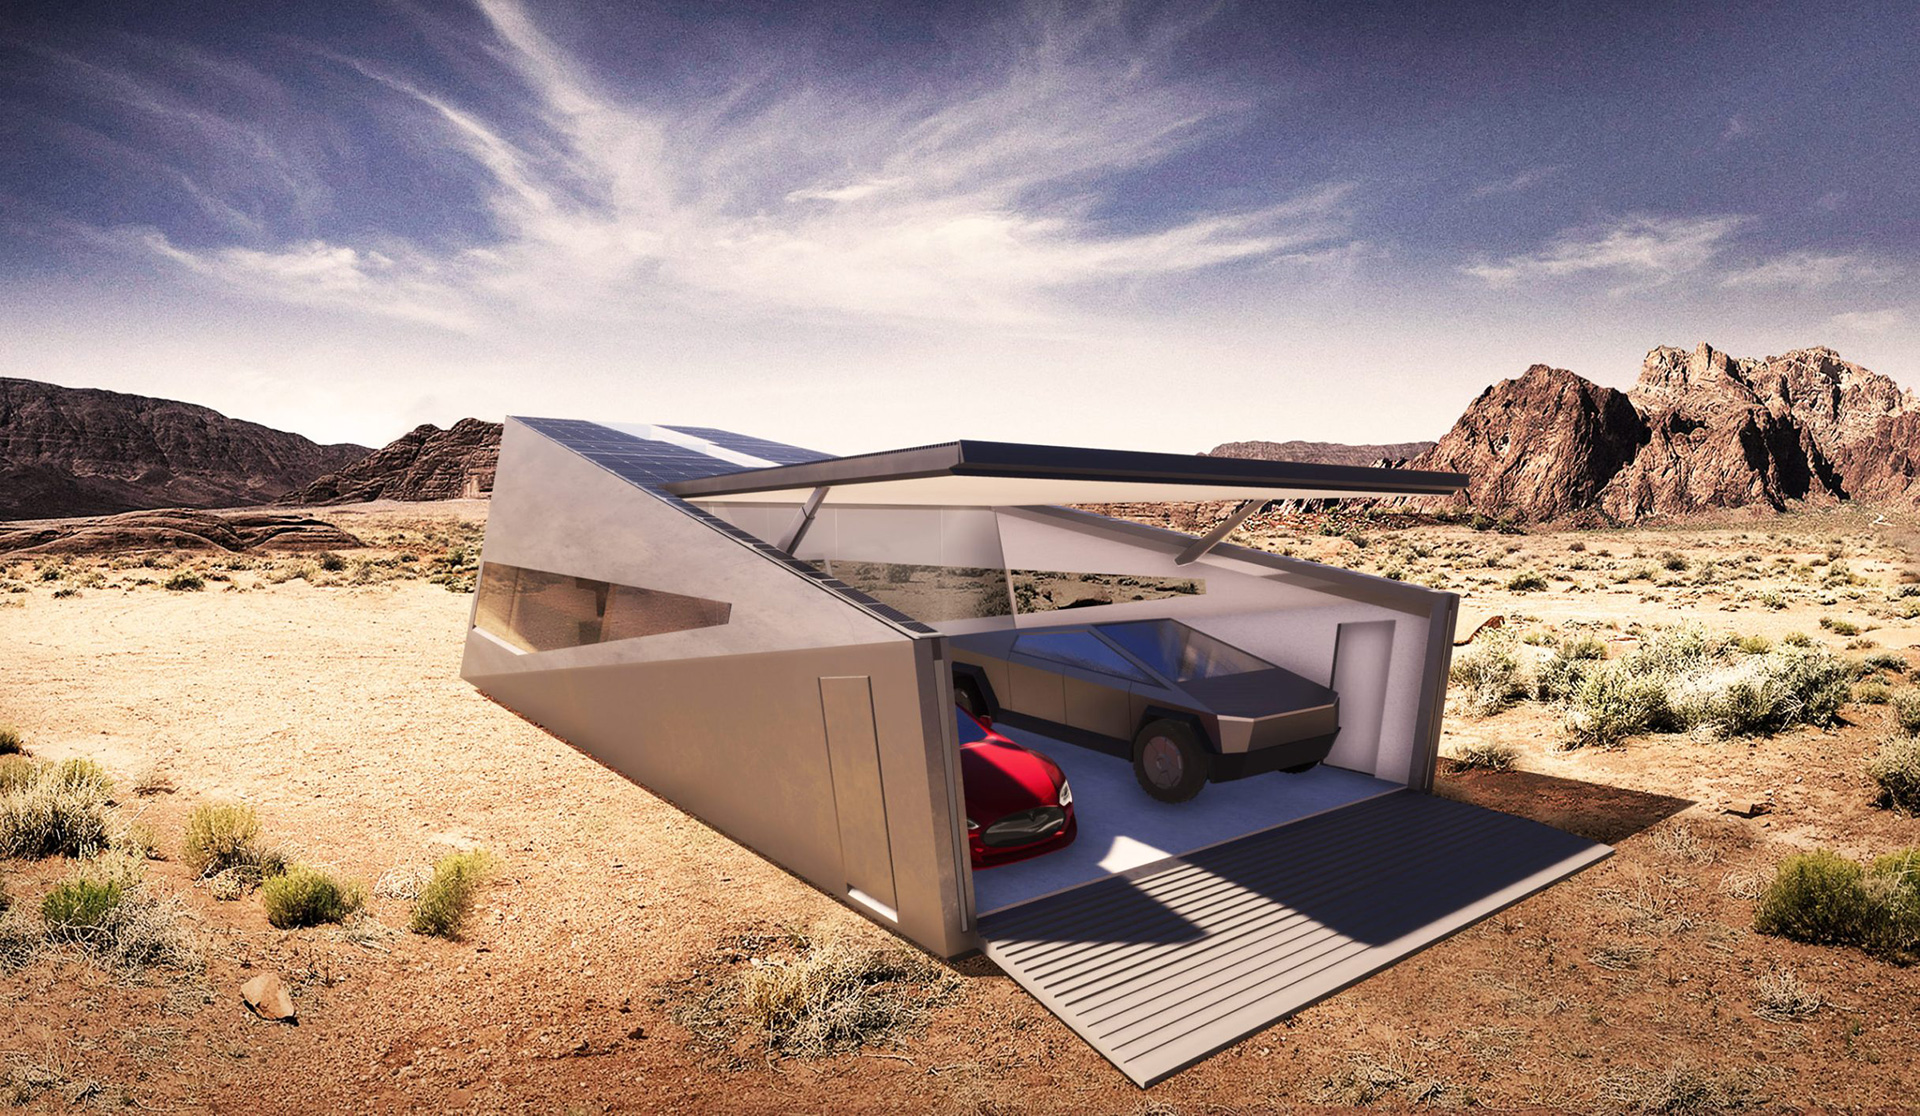 Cybunker is a futuristic home designed by Lars Büro | Cybunker |Lars Büro | STIRworld